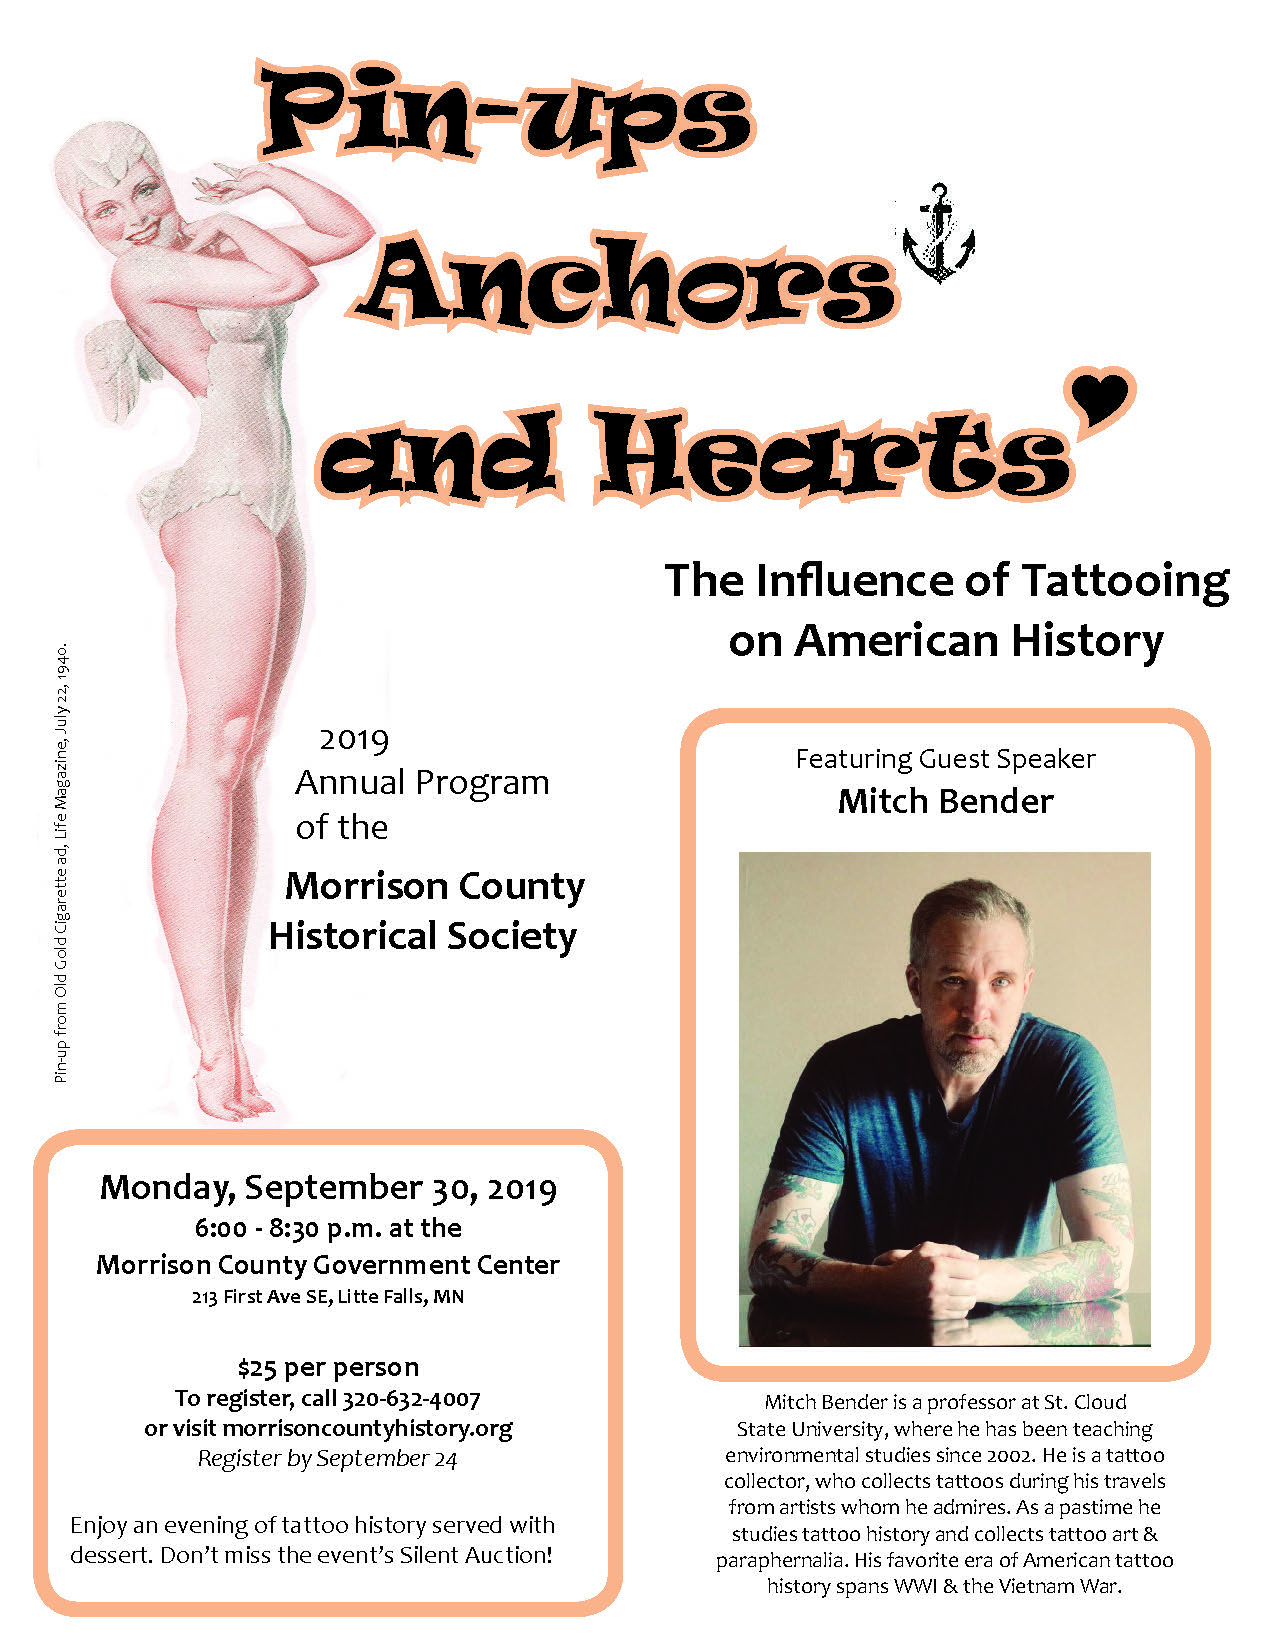 Flier for Morrison County Historical Society 2019 Annual Program, Pin-ups, Anchors and Hearts: The Influence of Tattooing on American History.